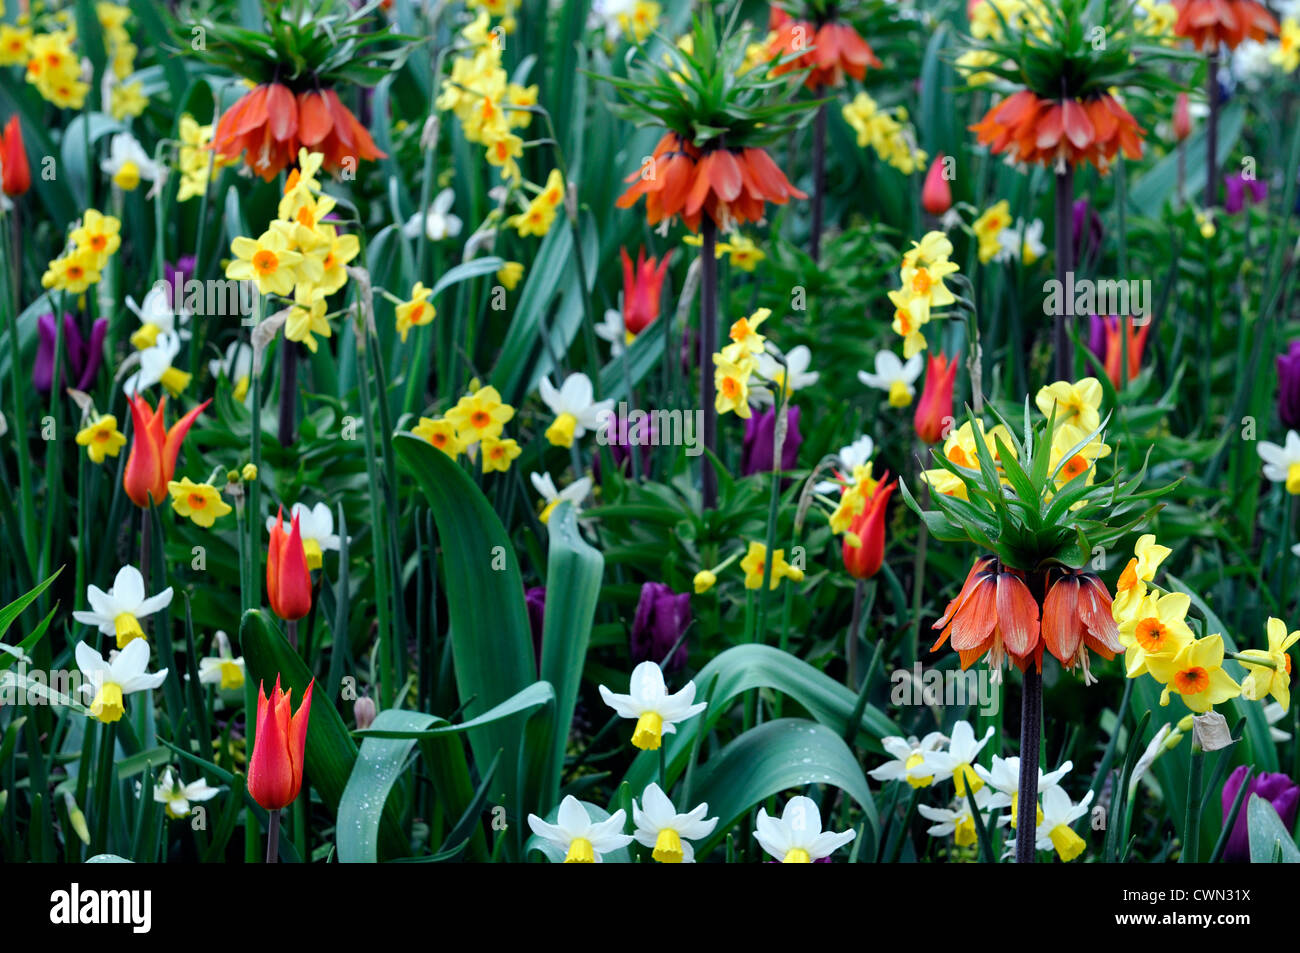 Mixed bed border spring blooming bulbs orange yellow white color mixed bed border spring blooming bulbs orange yellow white color colour combo combination mix mixed planting display scheme mightylinksfo